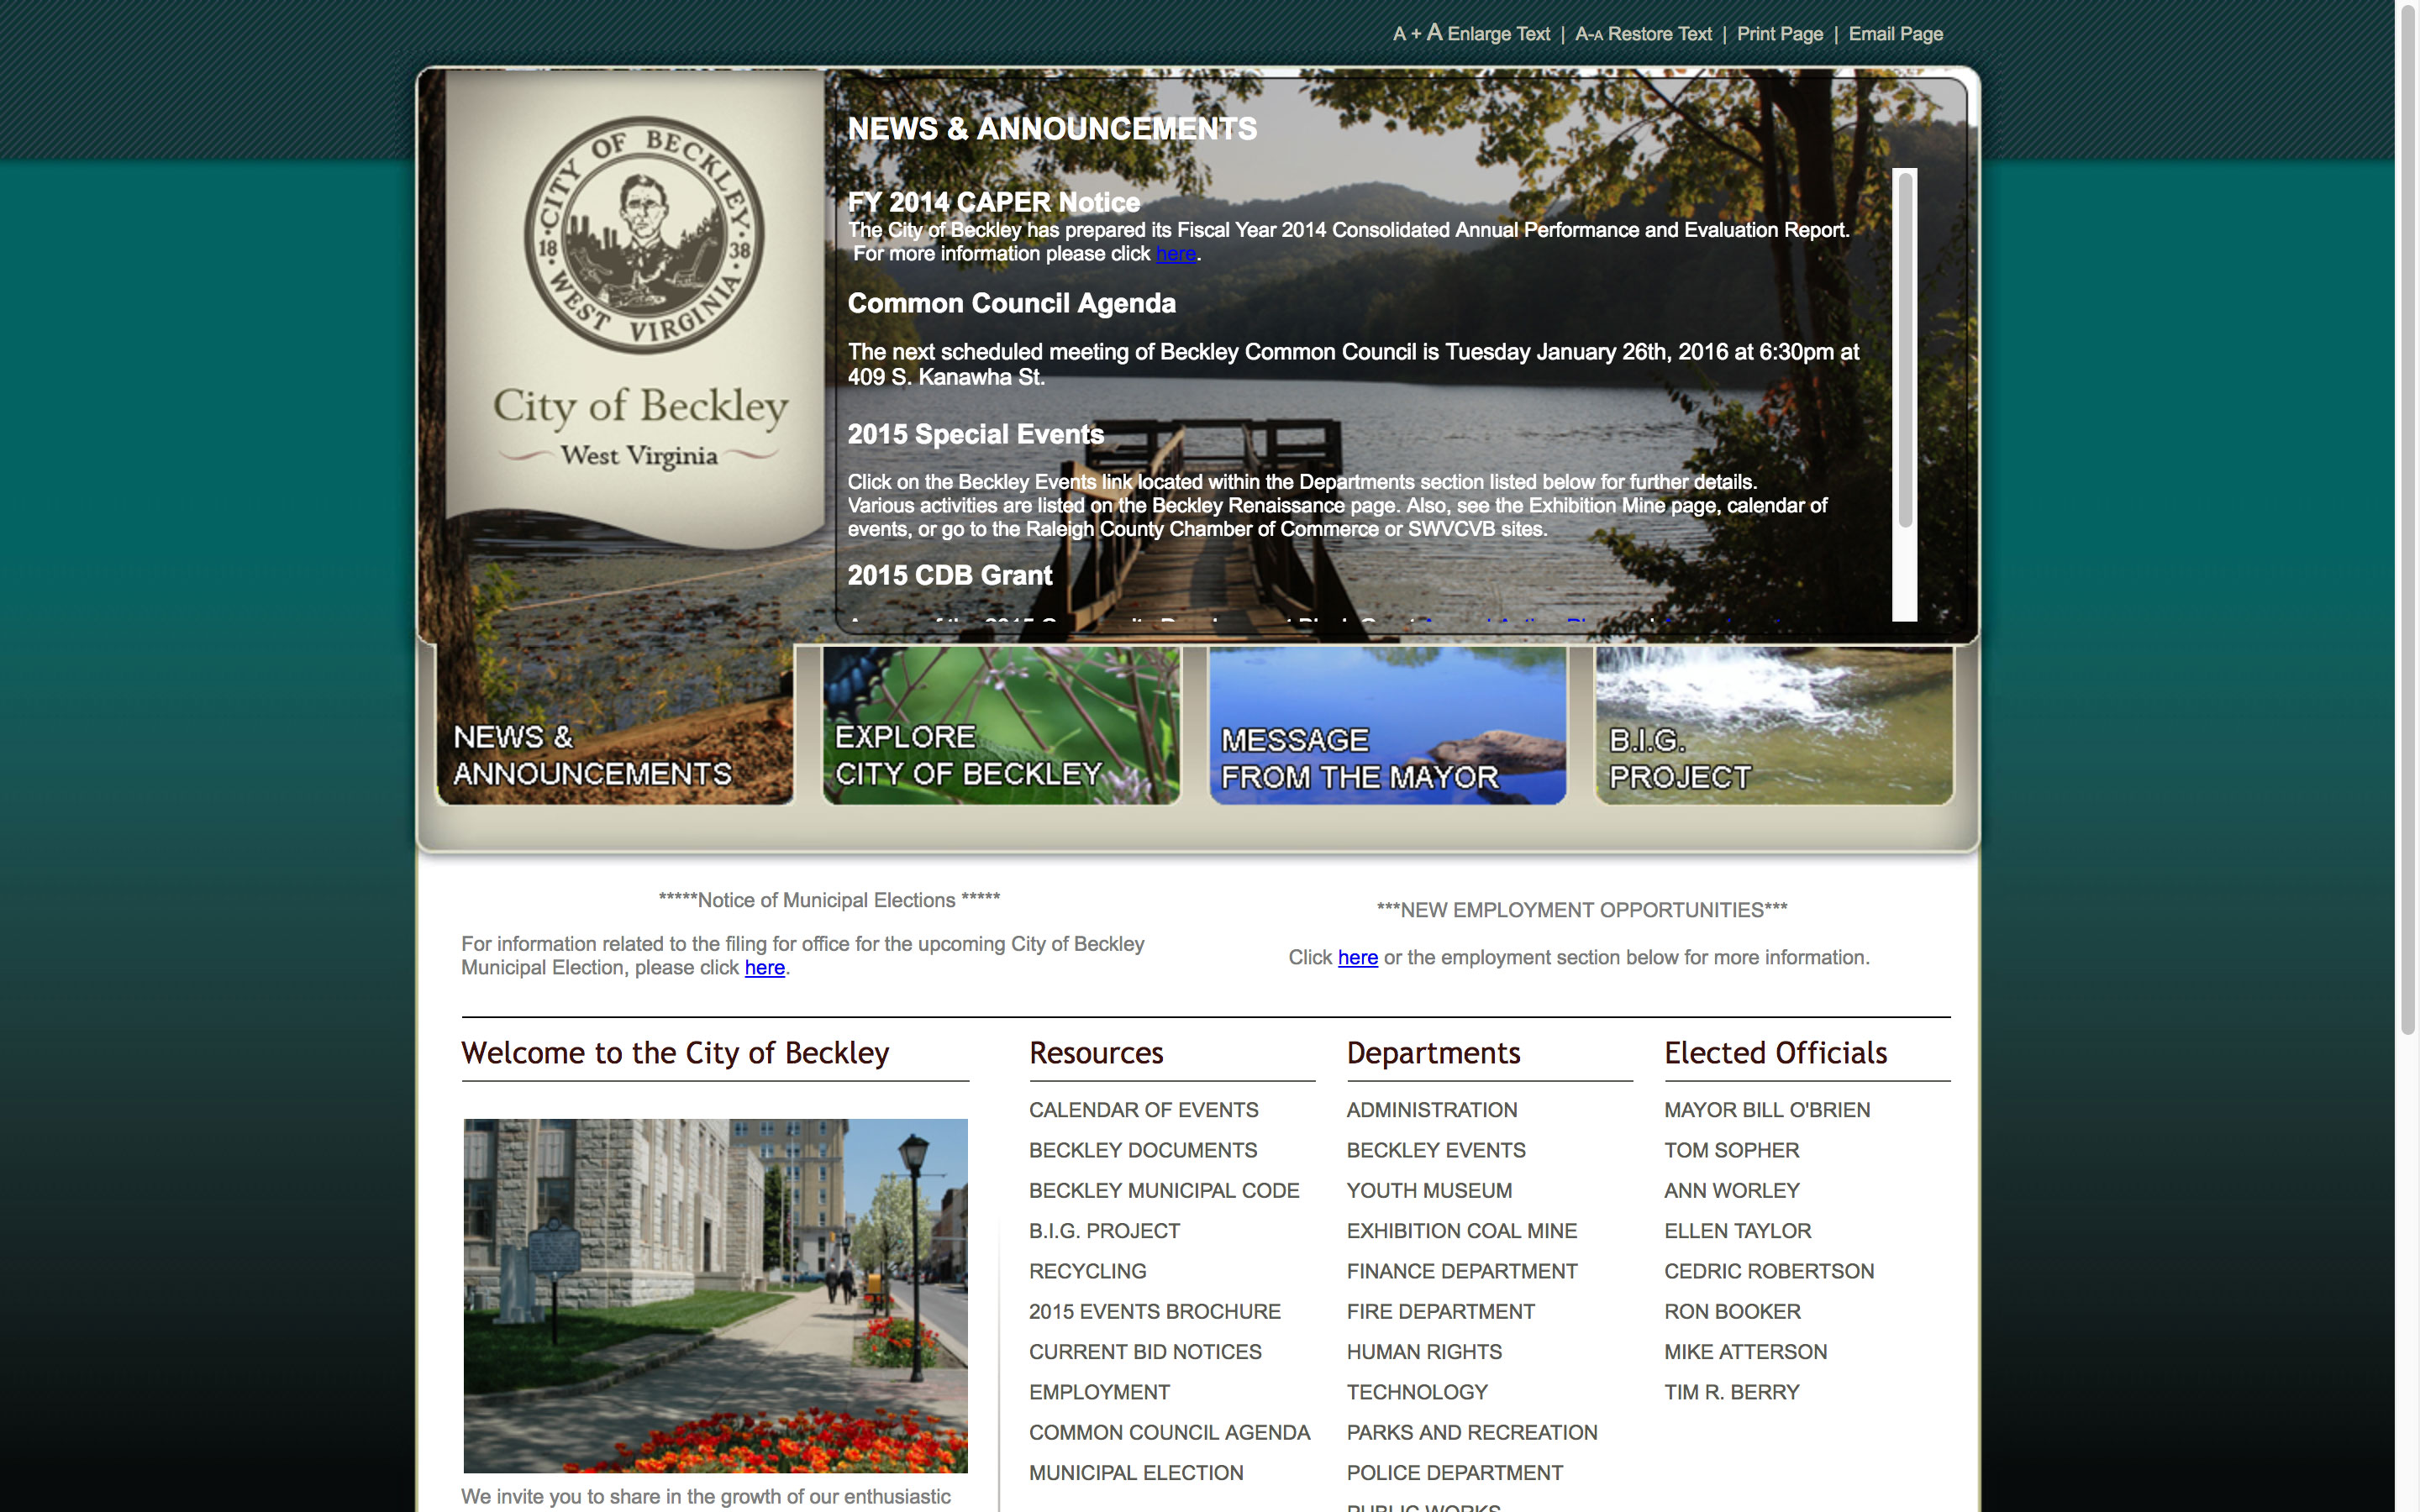 beckley-news-and-announcements-web-design